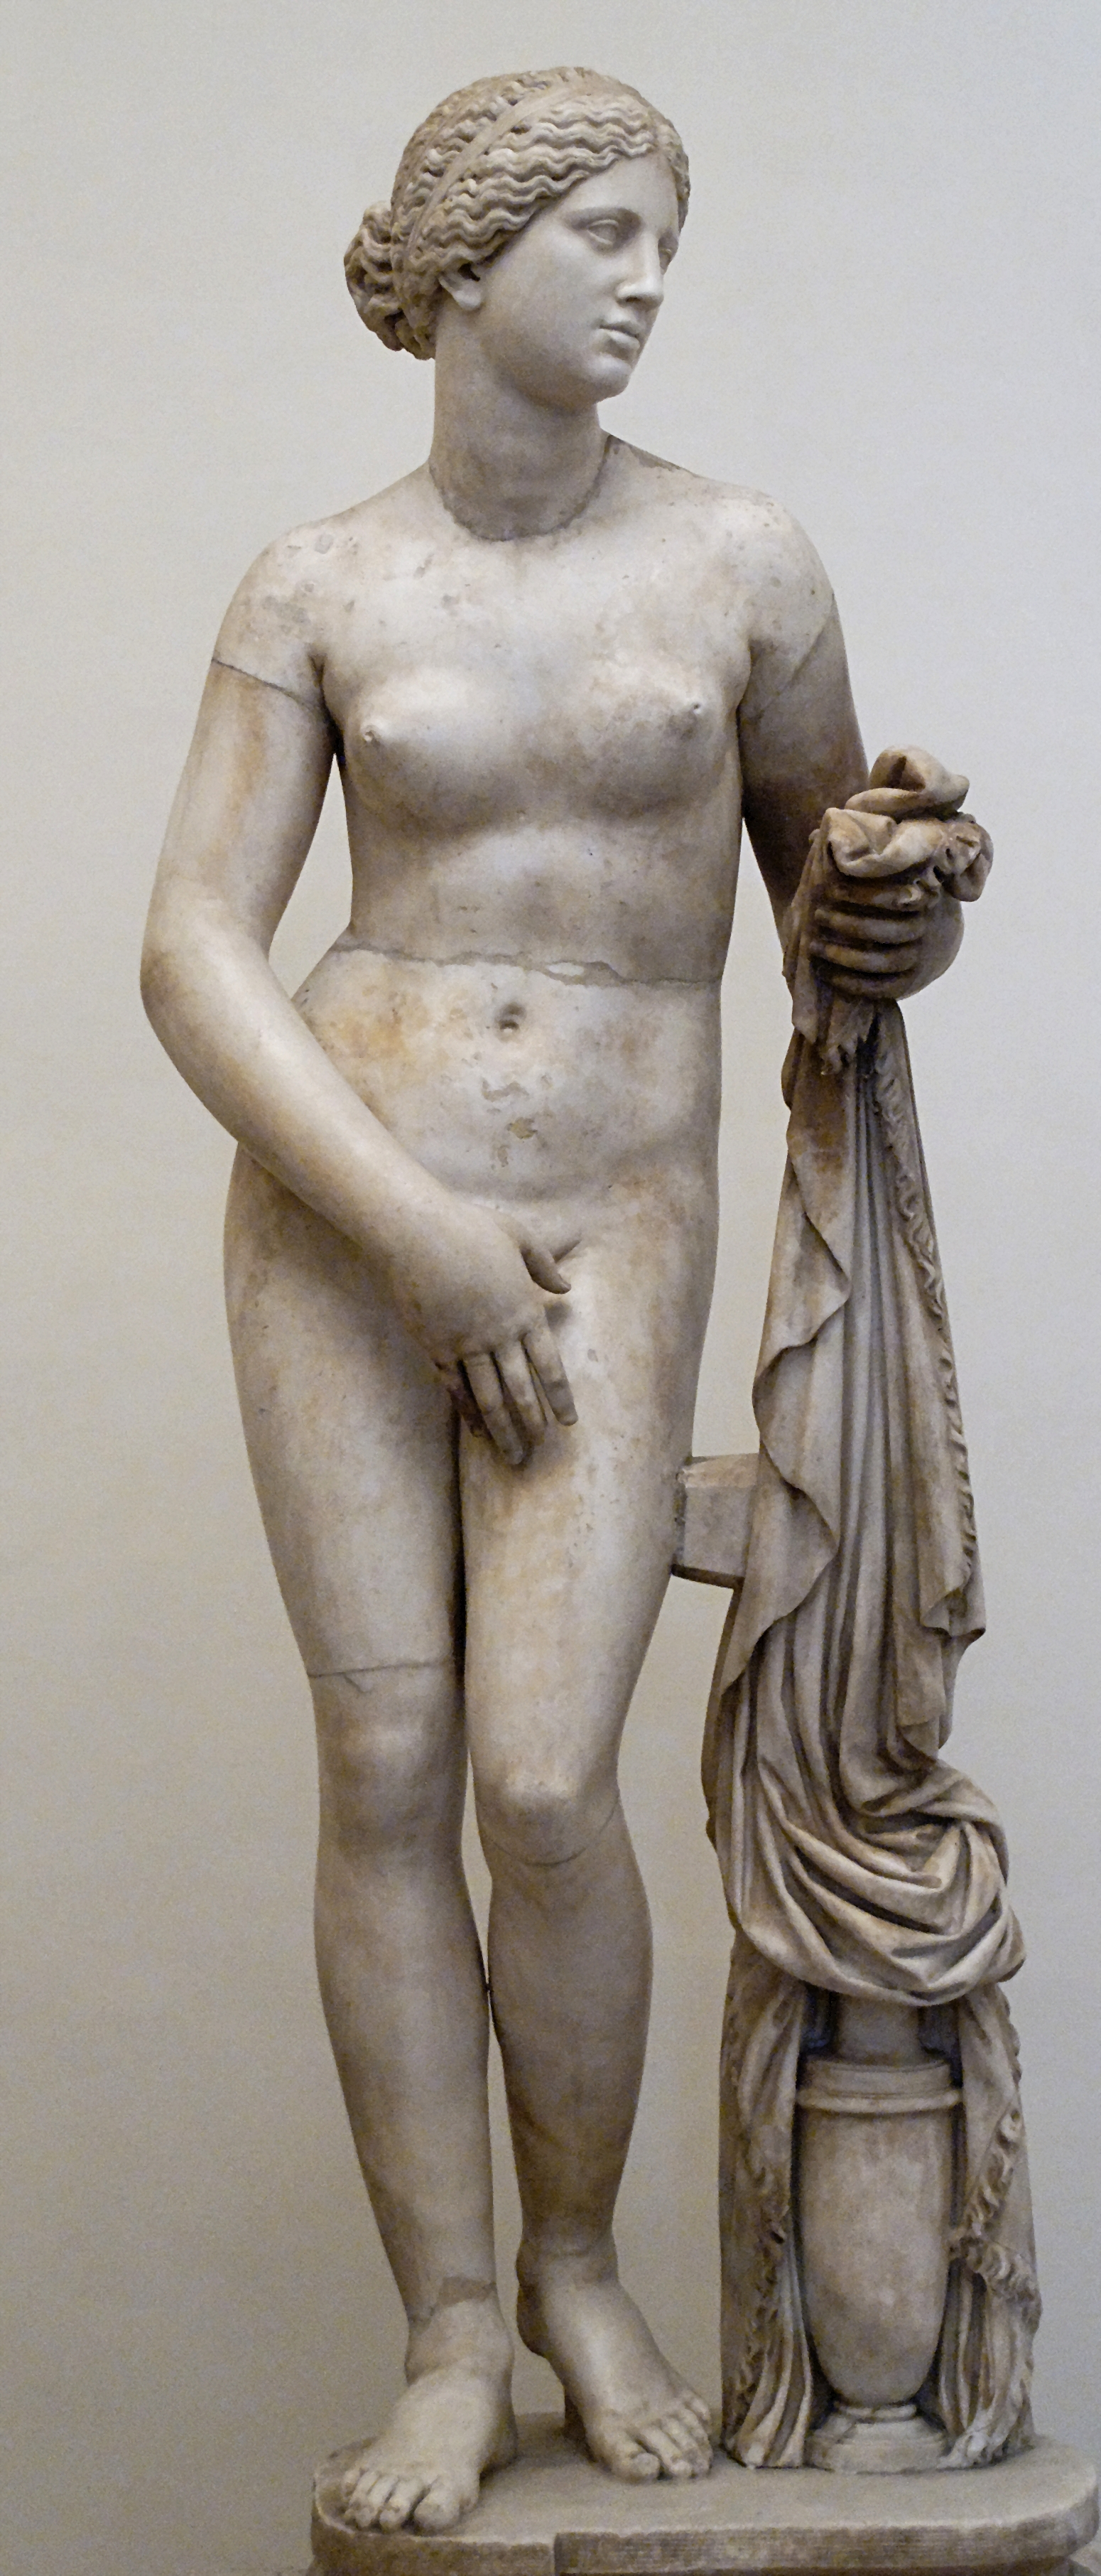 Nude ancient greek females necessary words